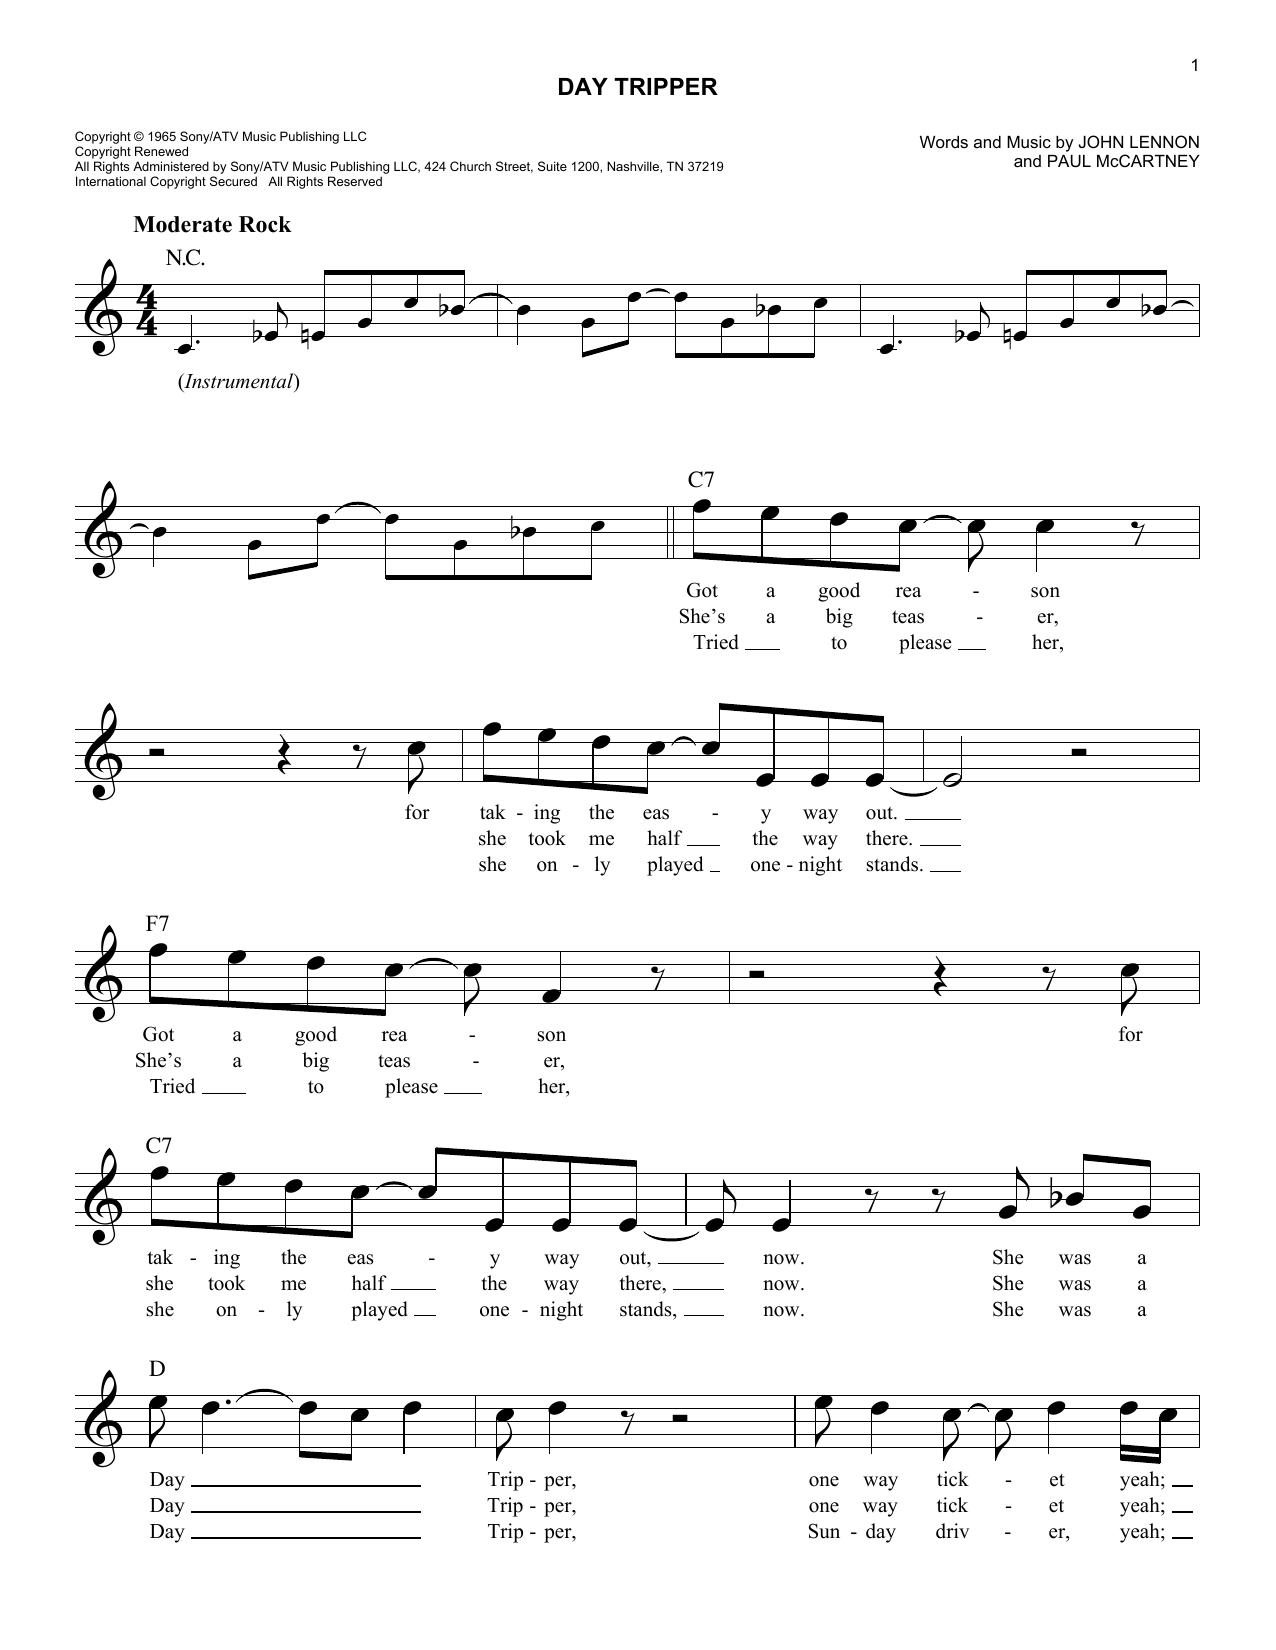 Day tripper chords by the beatles melody line lyrics chords day tripper sheet music hexwebz Image collections